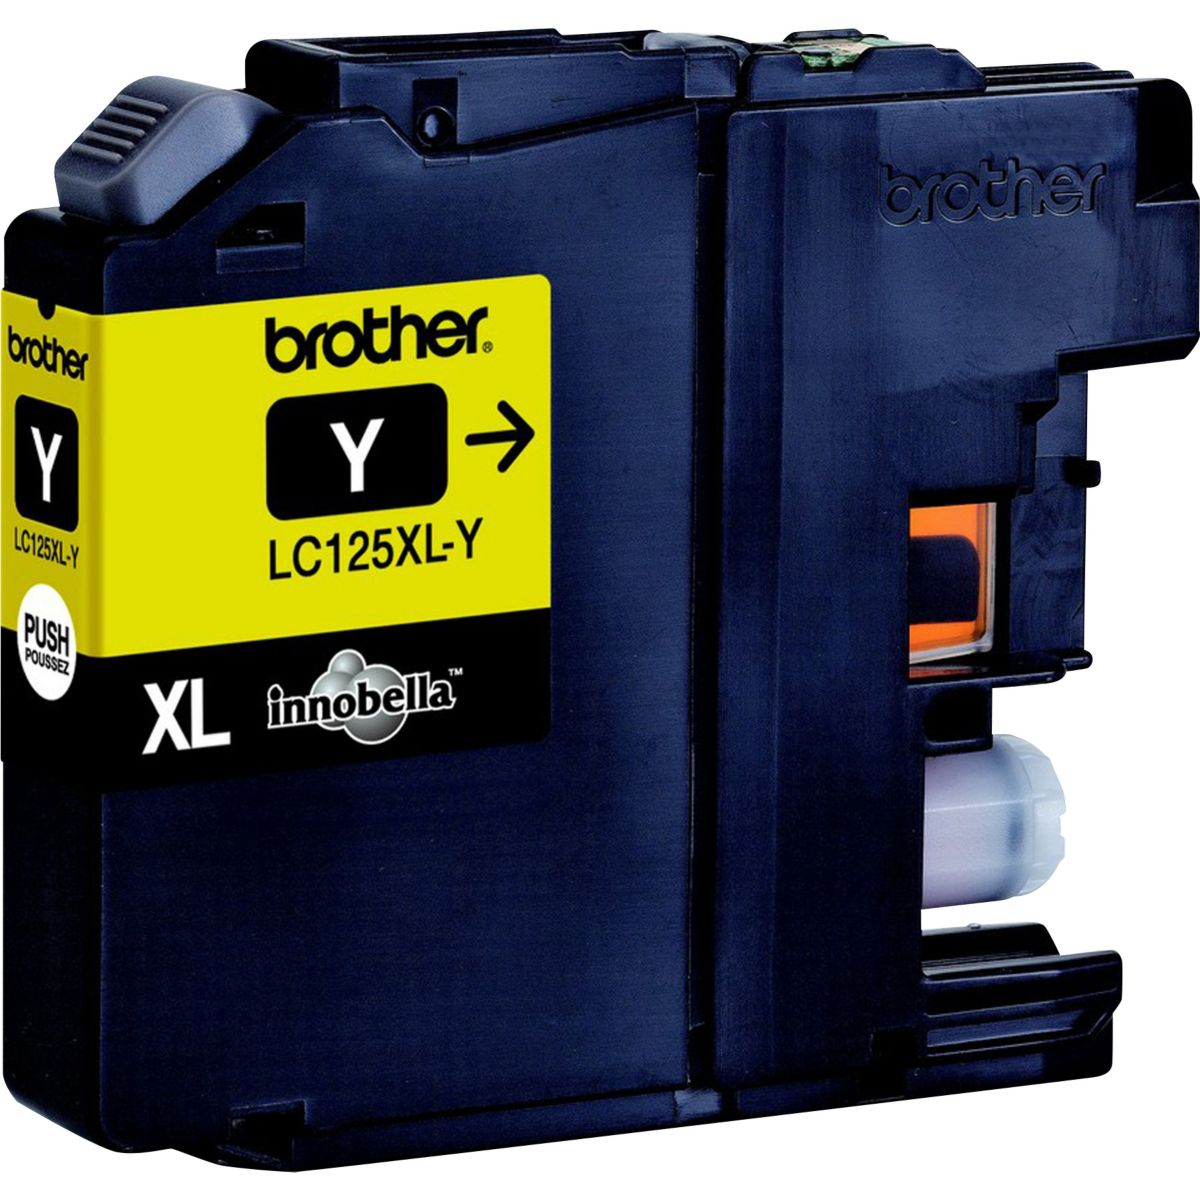 Cartouche d'encre brother lc125 xl jaune (photo)